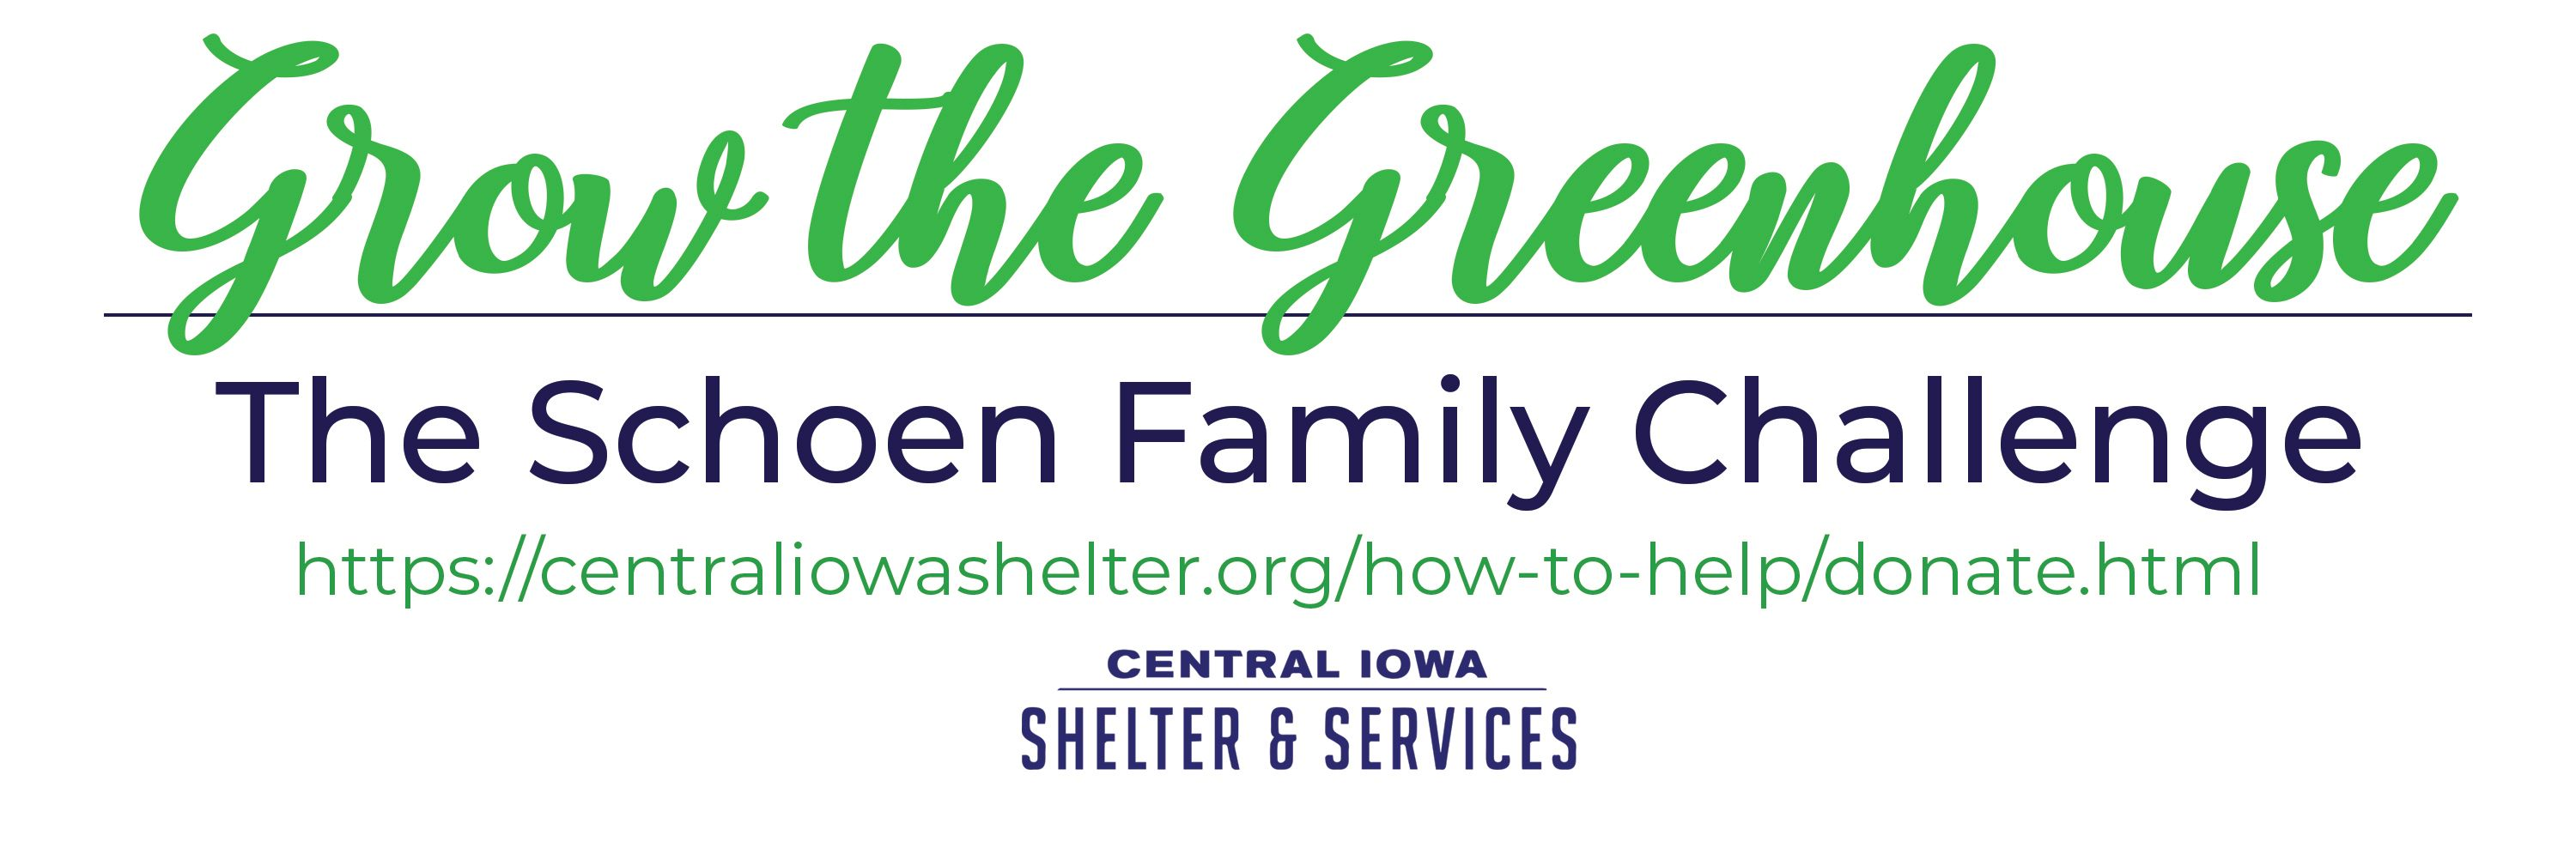 $50,000 DONATION ANNOUNCED TO EXPAND CENTRAL IOWA SHELTER & SERVICES GREENHOUSE PROGRAM